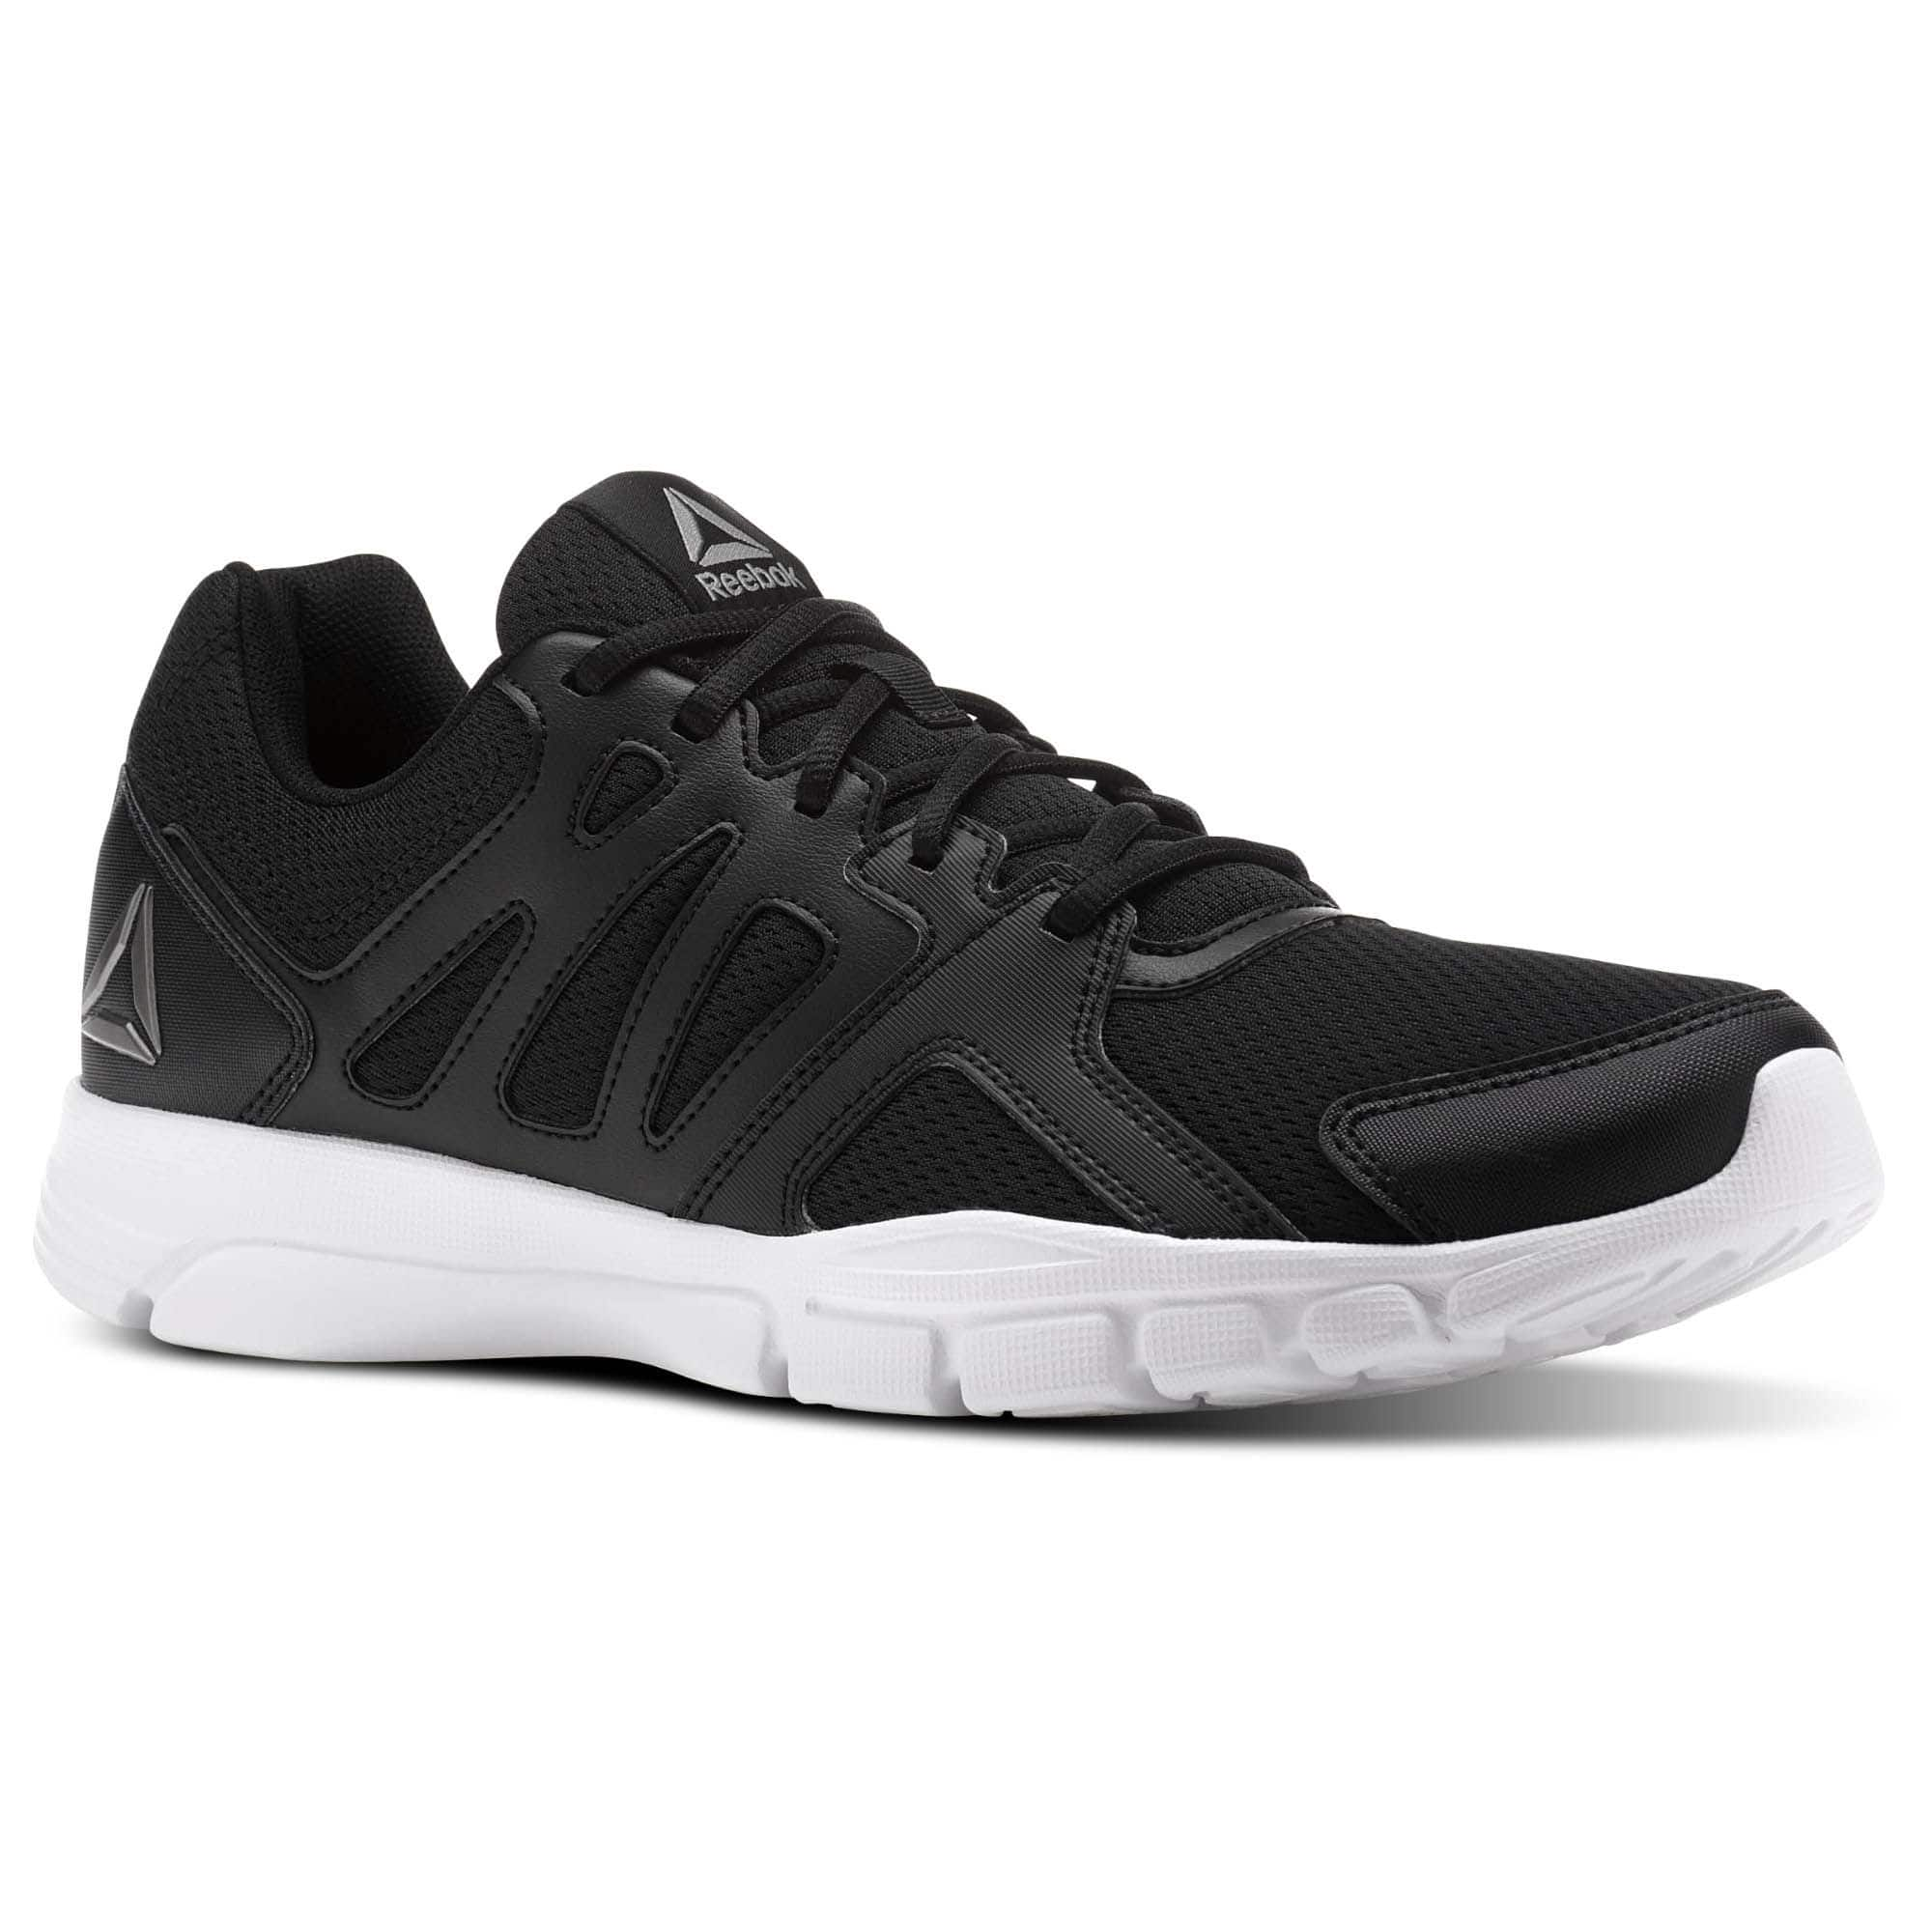 Reebok Coupon 40% Off Outlet: Men's Trainfusion Nine 3.0 $24, Women's Trainfusion Nine 3.0 $27 & More + Free S/H Rewards Members